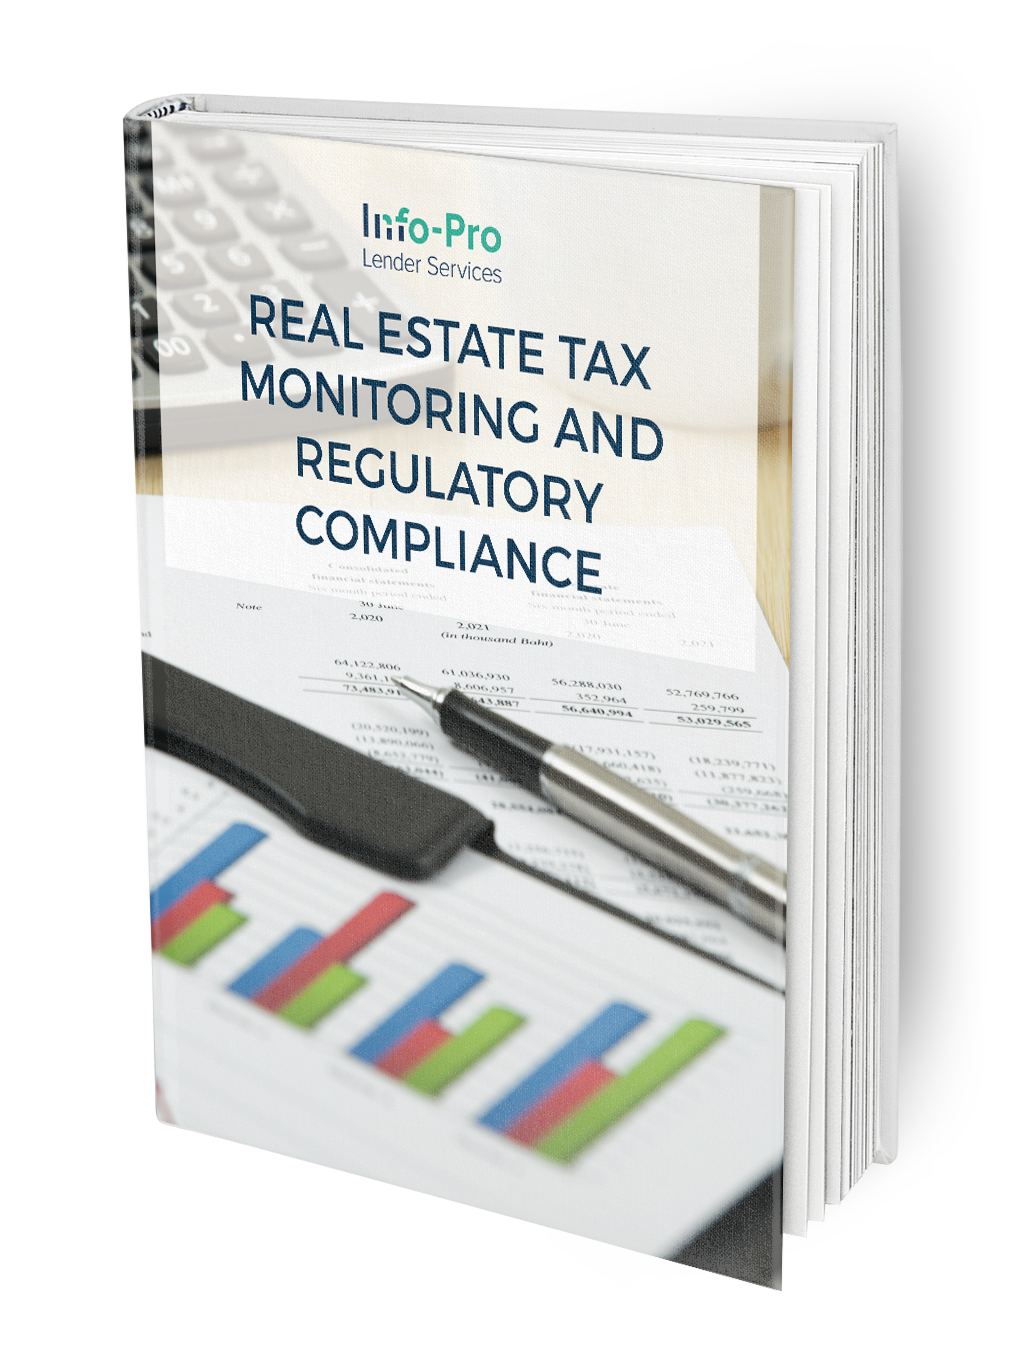 Ebook_Real_Estate_Tax_Monitoring_and_Regulatory_Compliance.png